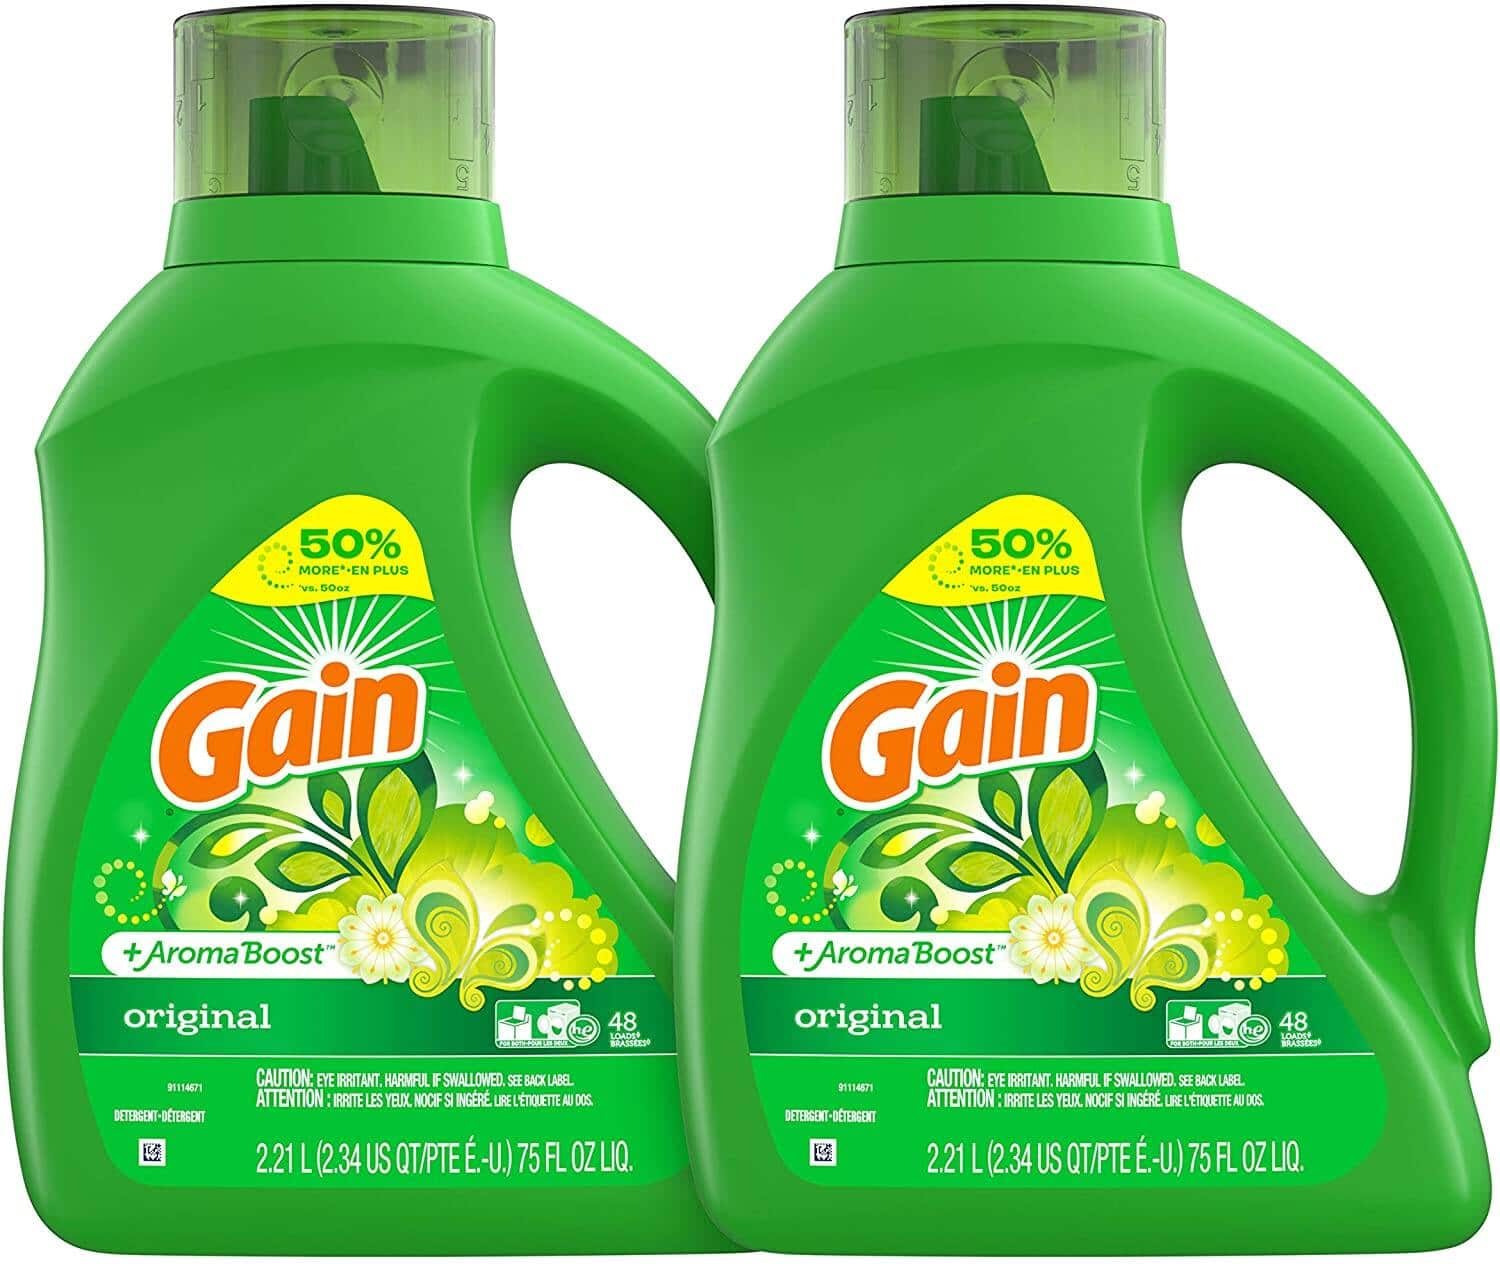 2-Ct 75-Oz Gain Liquid Laundry Detergent Plus Aroma Boost (Original Scent) $11.12 ($5.56 each) w/ S&S + Free Shipping w/ Prime or on $25+